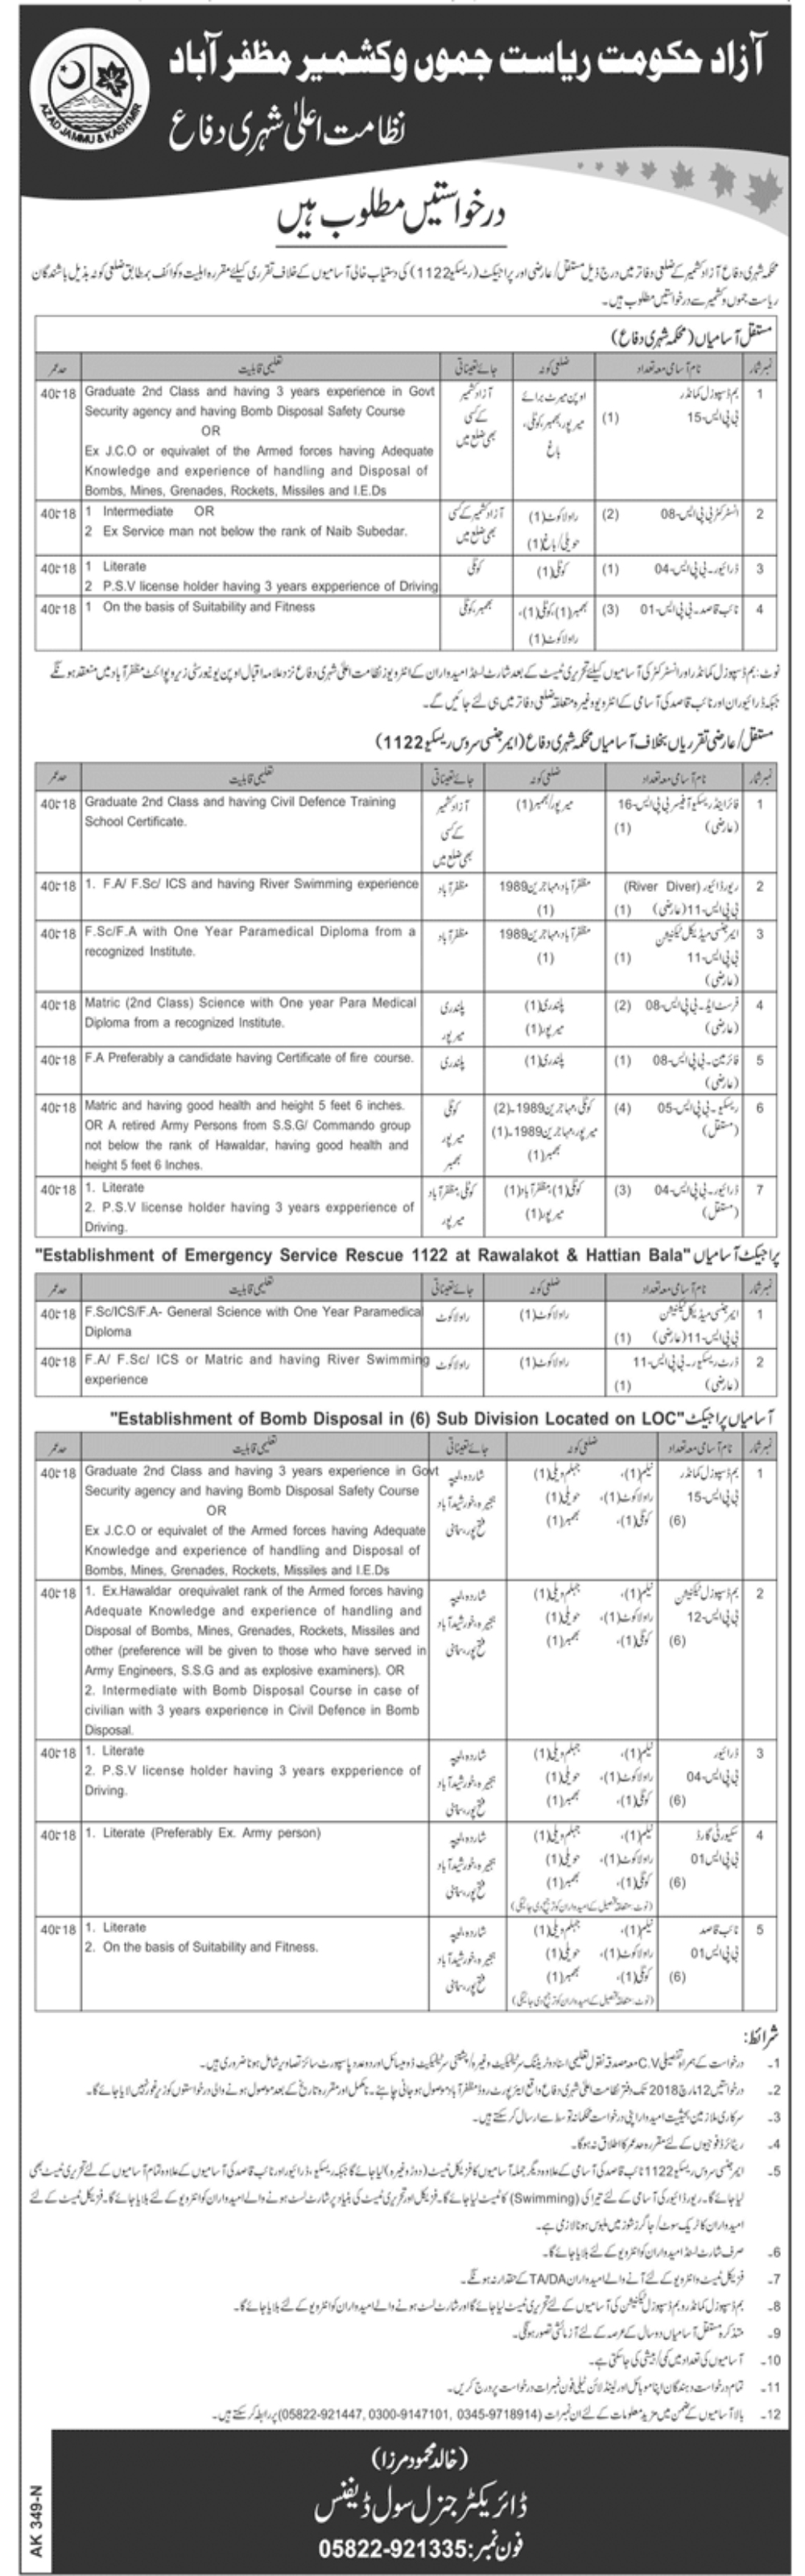 Civil Defense Azad Kashmir 52 Jobs 17th February 2018 in Daily Jang Newspaper